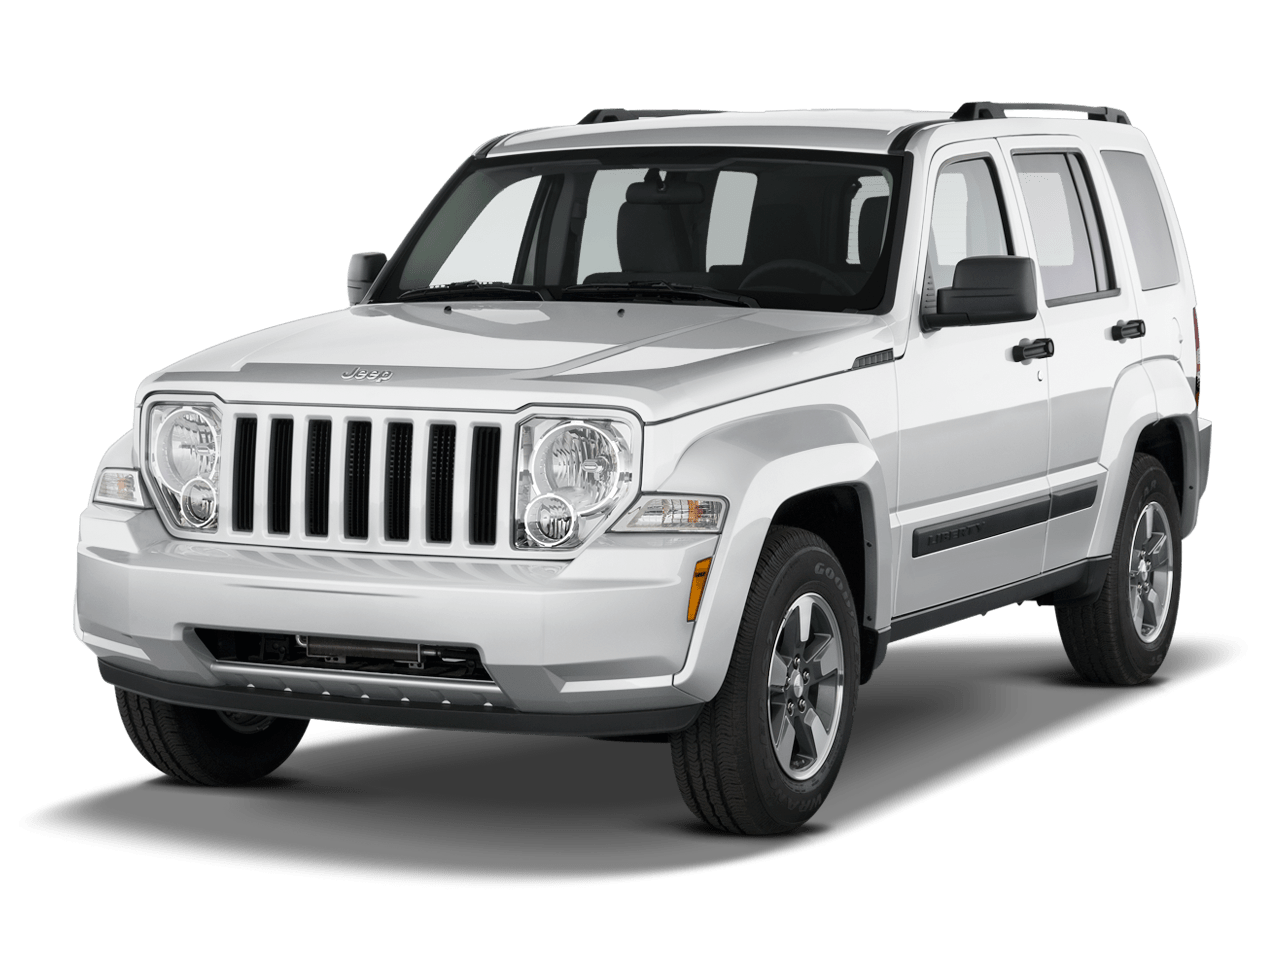 hight resolution of car 2010 jeep grand cherokee parts diagram wiring diagrams for